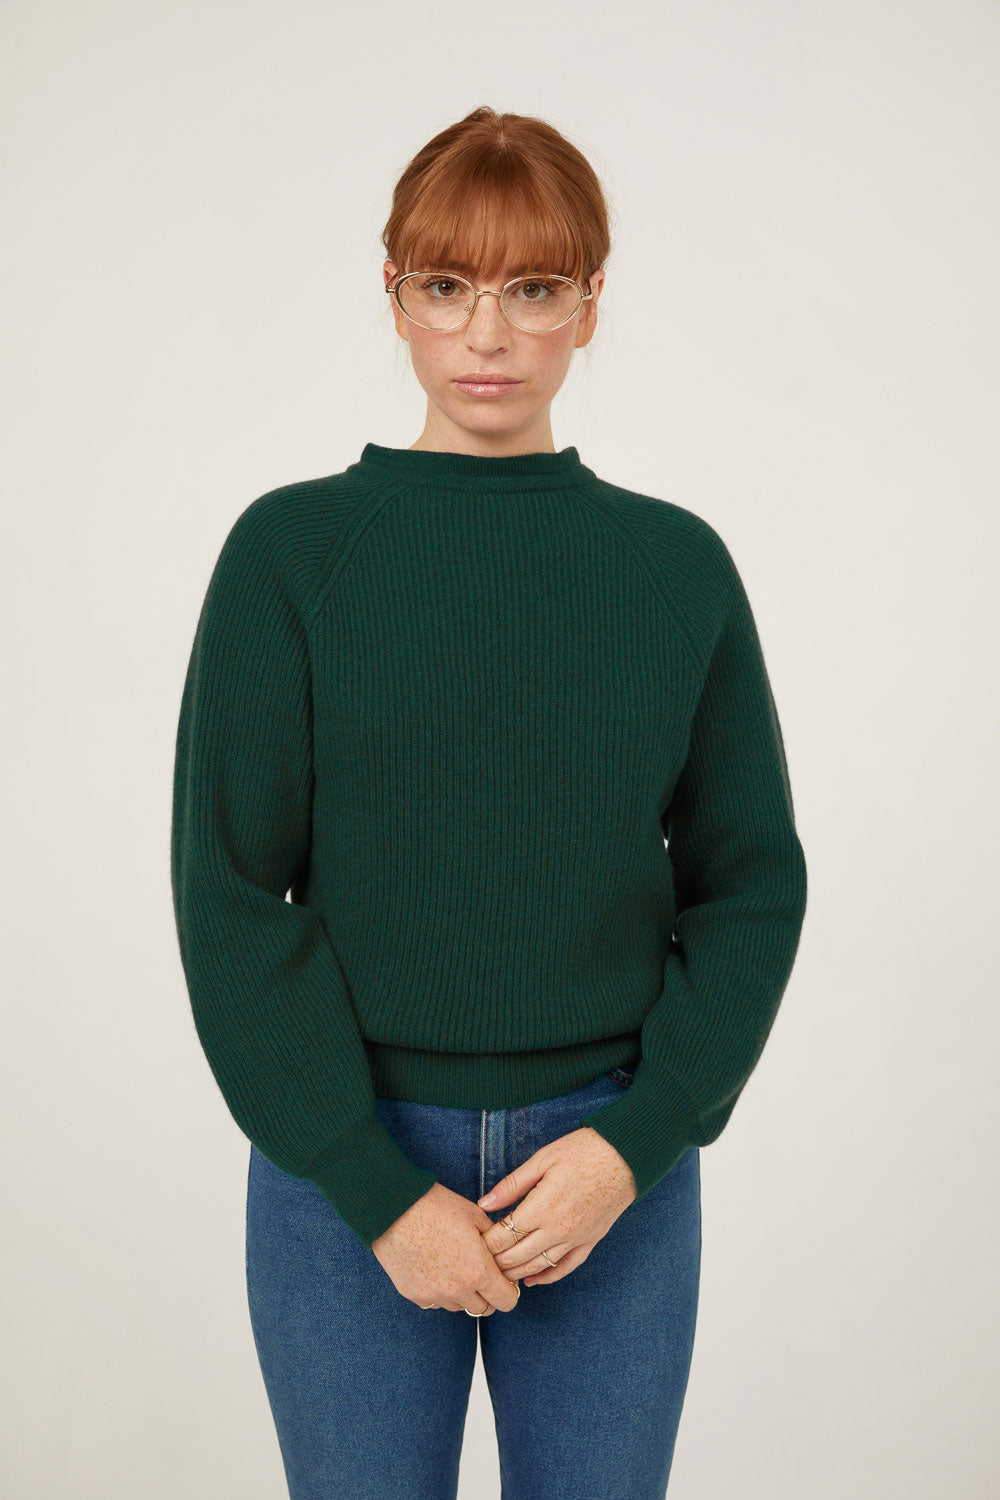 Evergreen cashmere mock neck pullover sweater with tie back front view